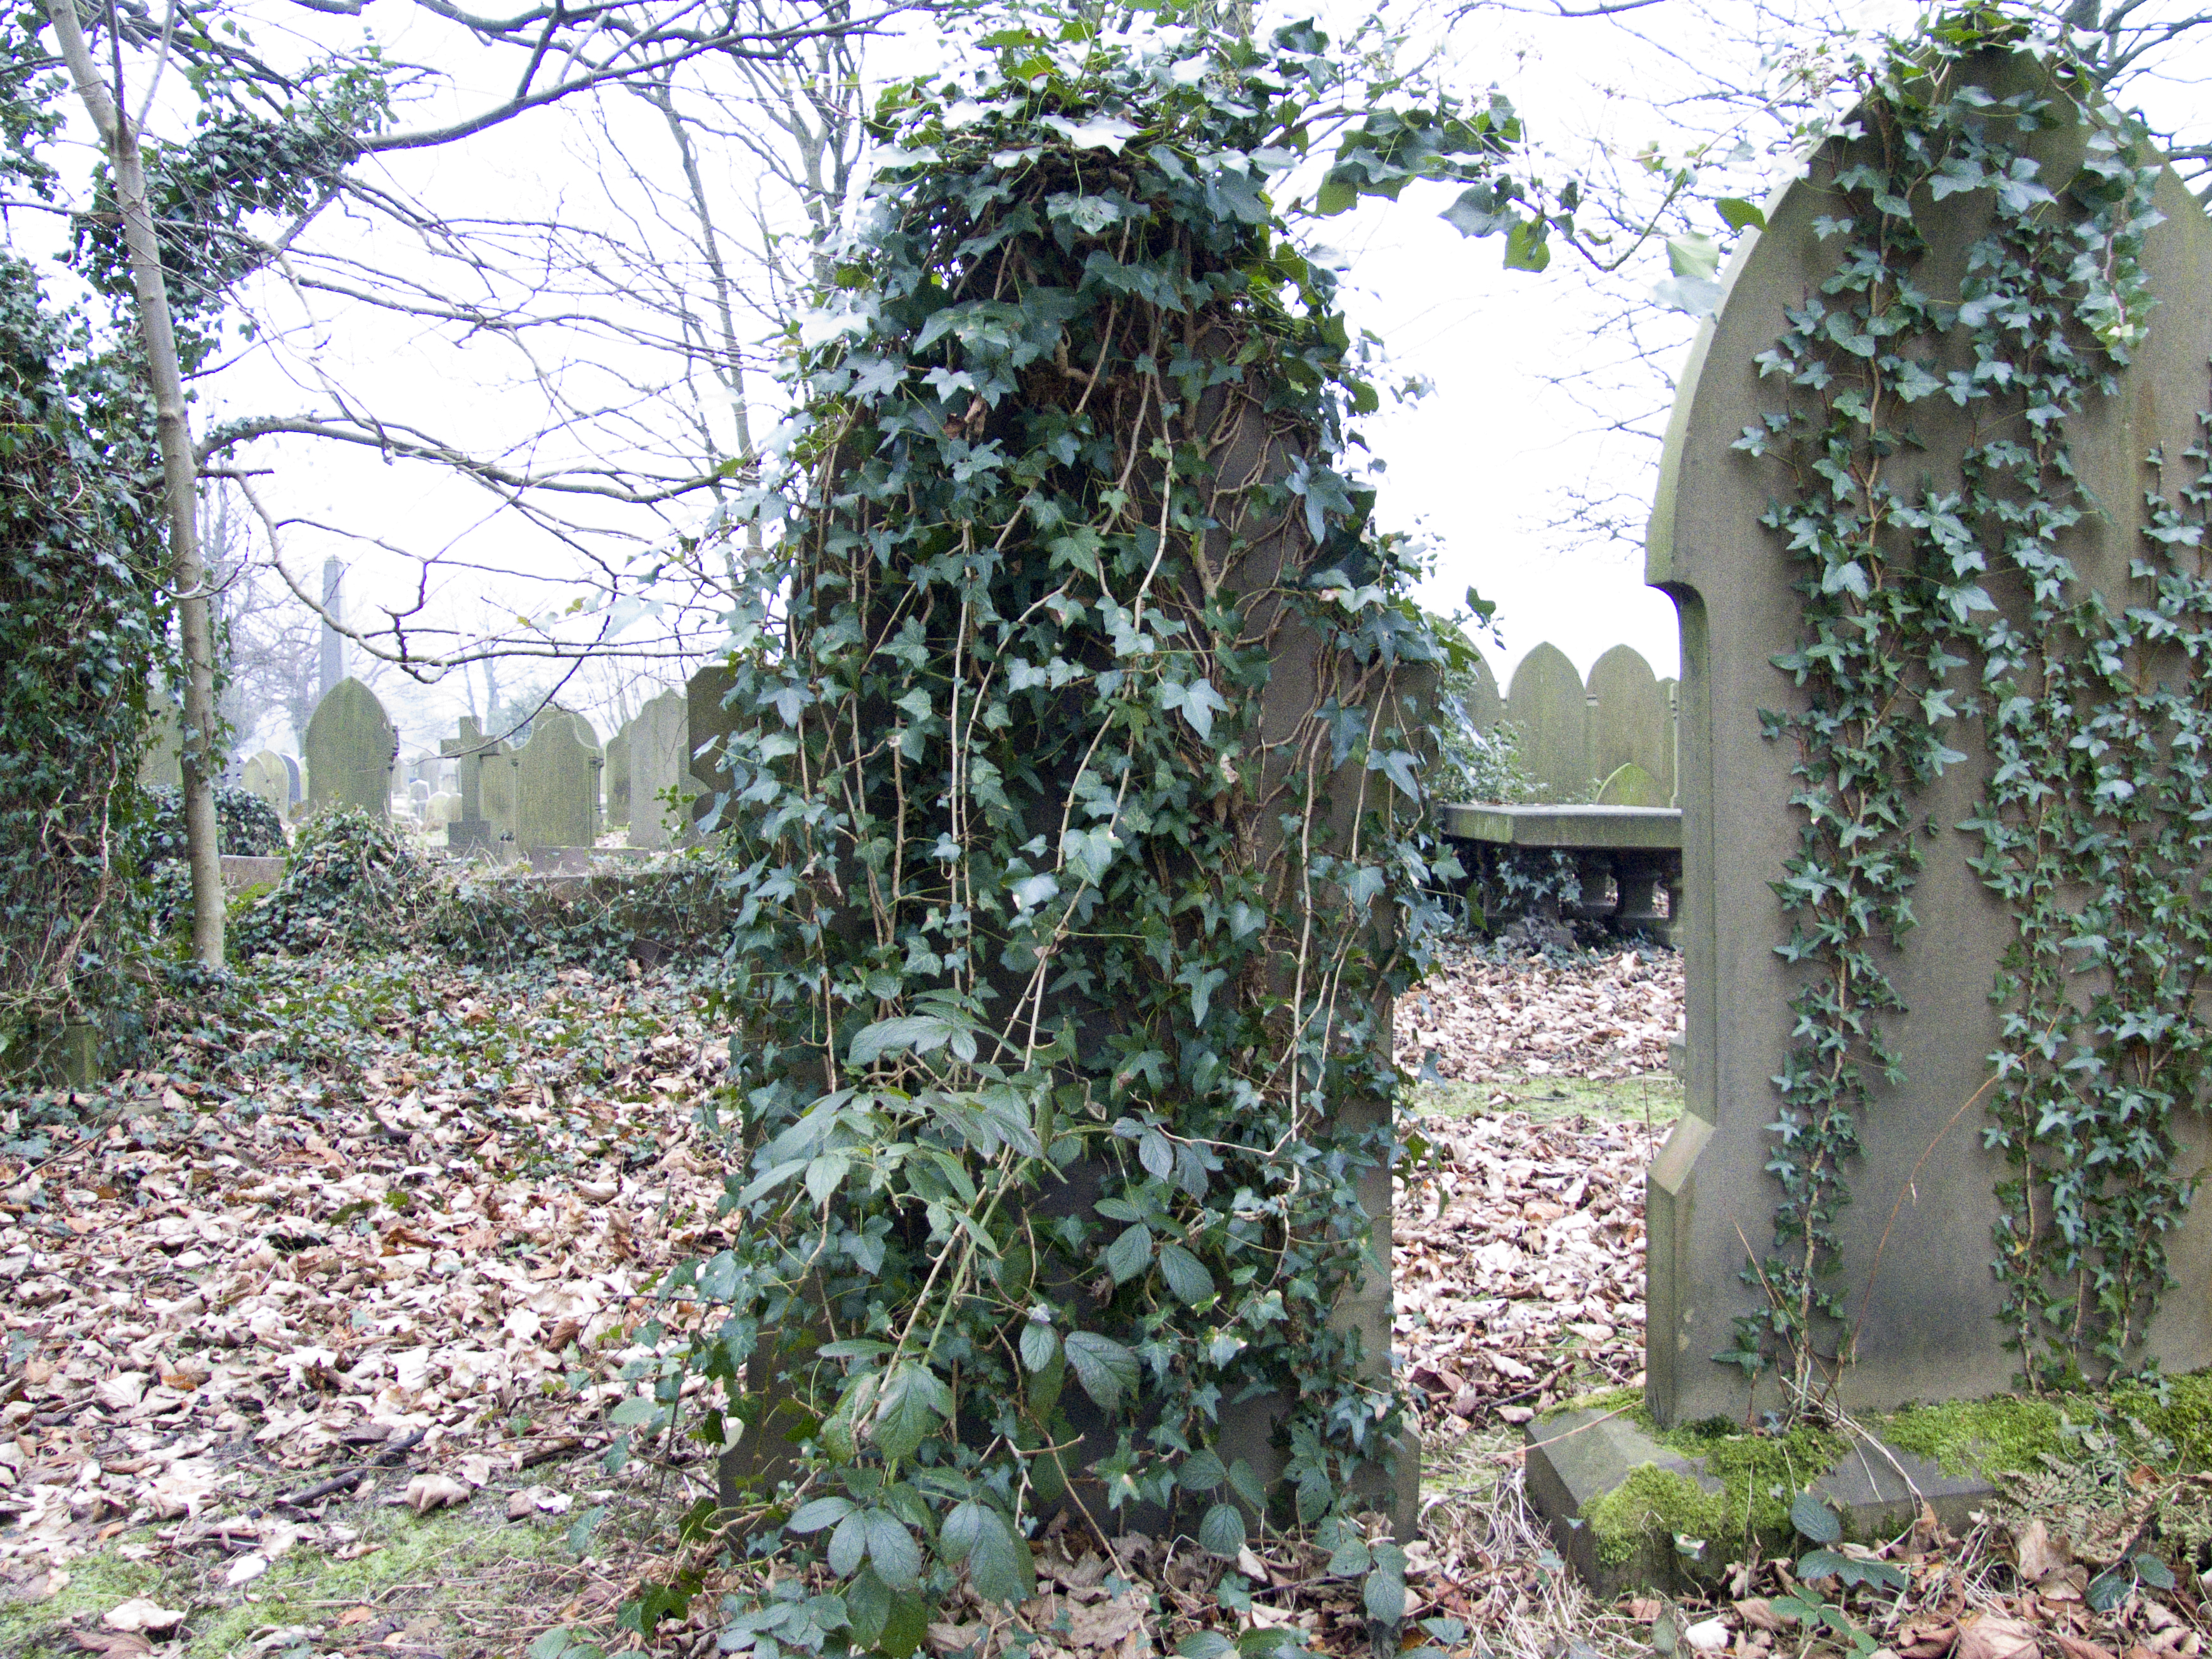 Grave Stone with Ivy Vine, Cemetery, Fall, Grave, Ivy, HQ Photo